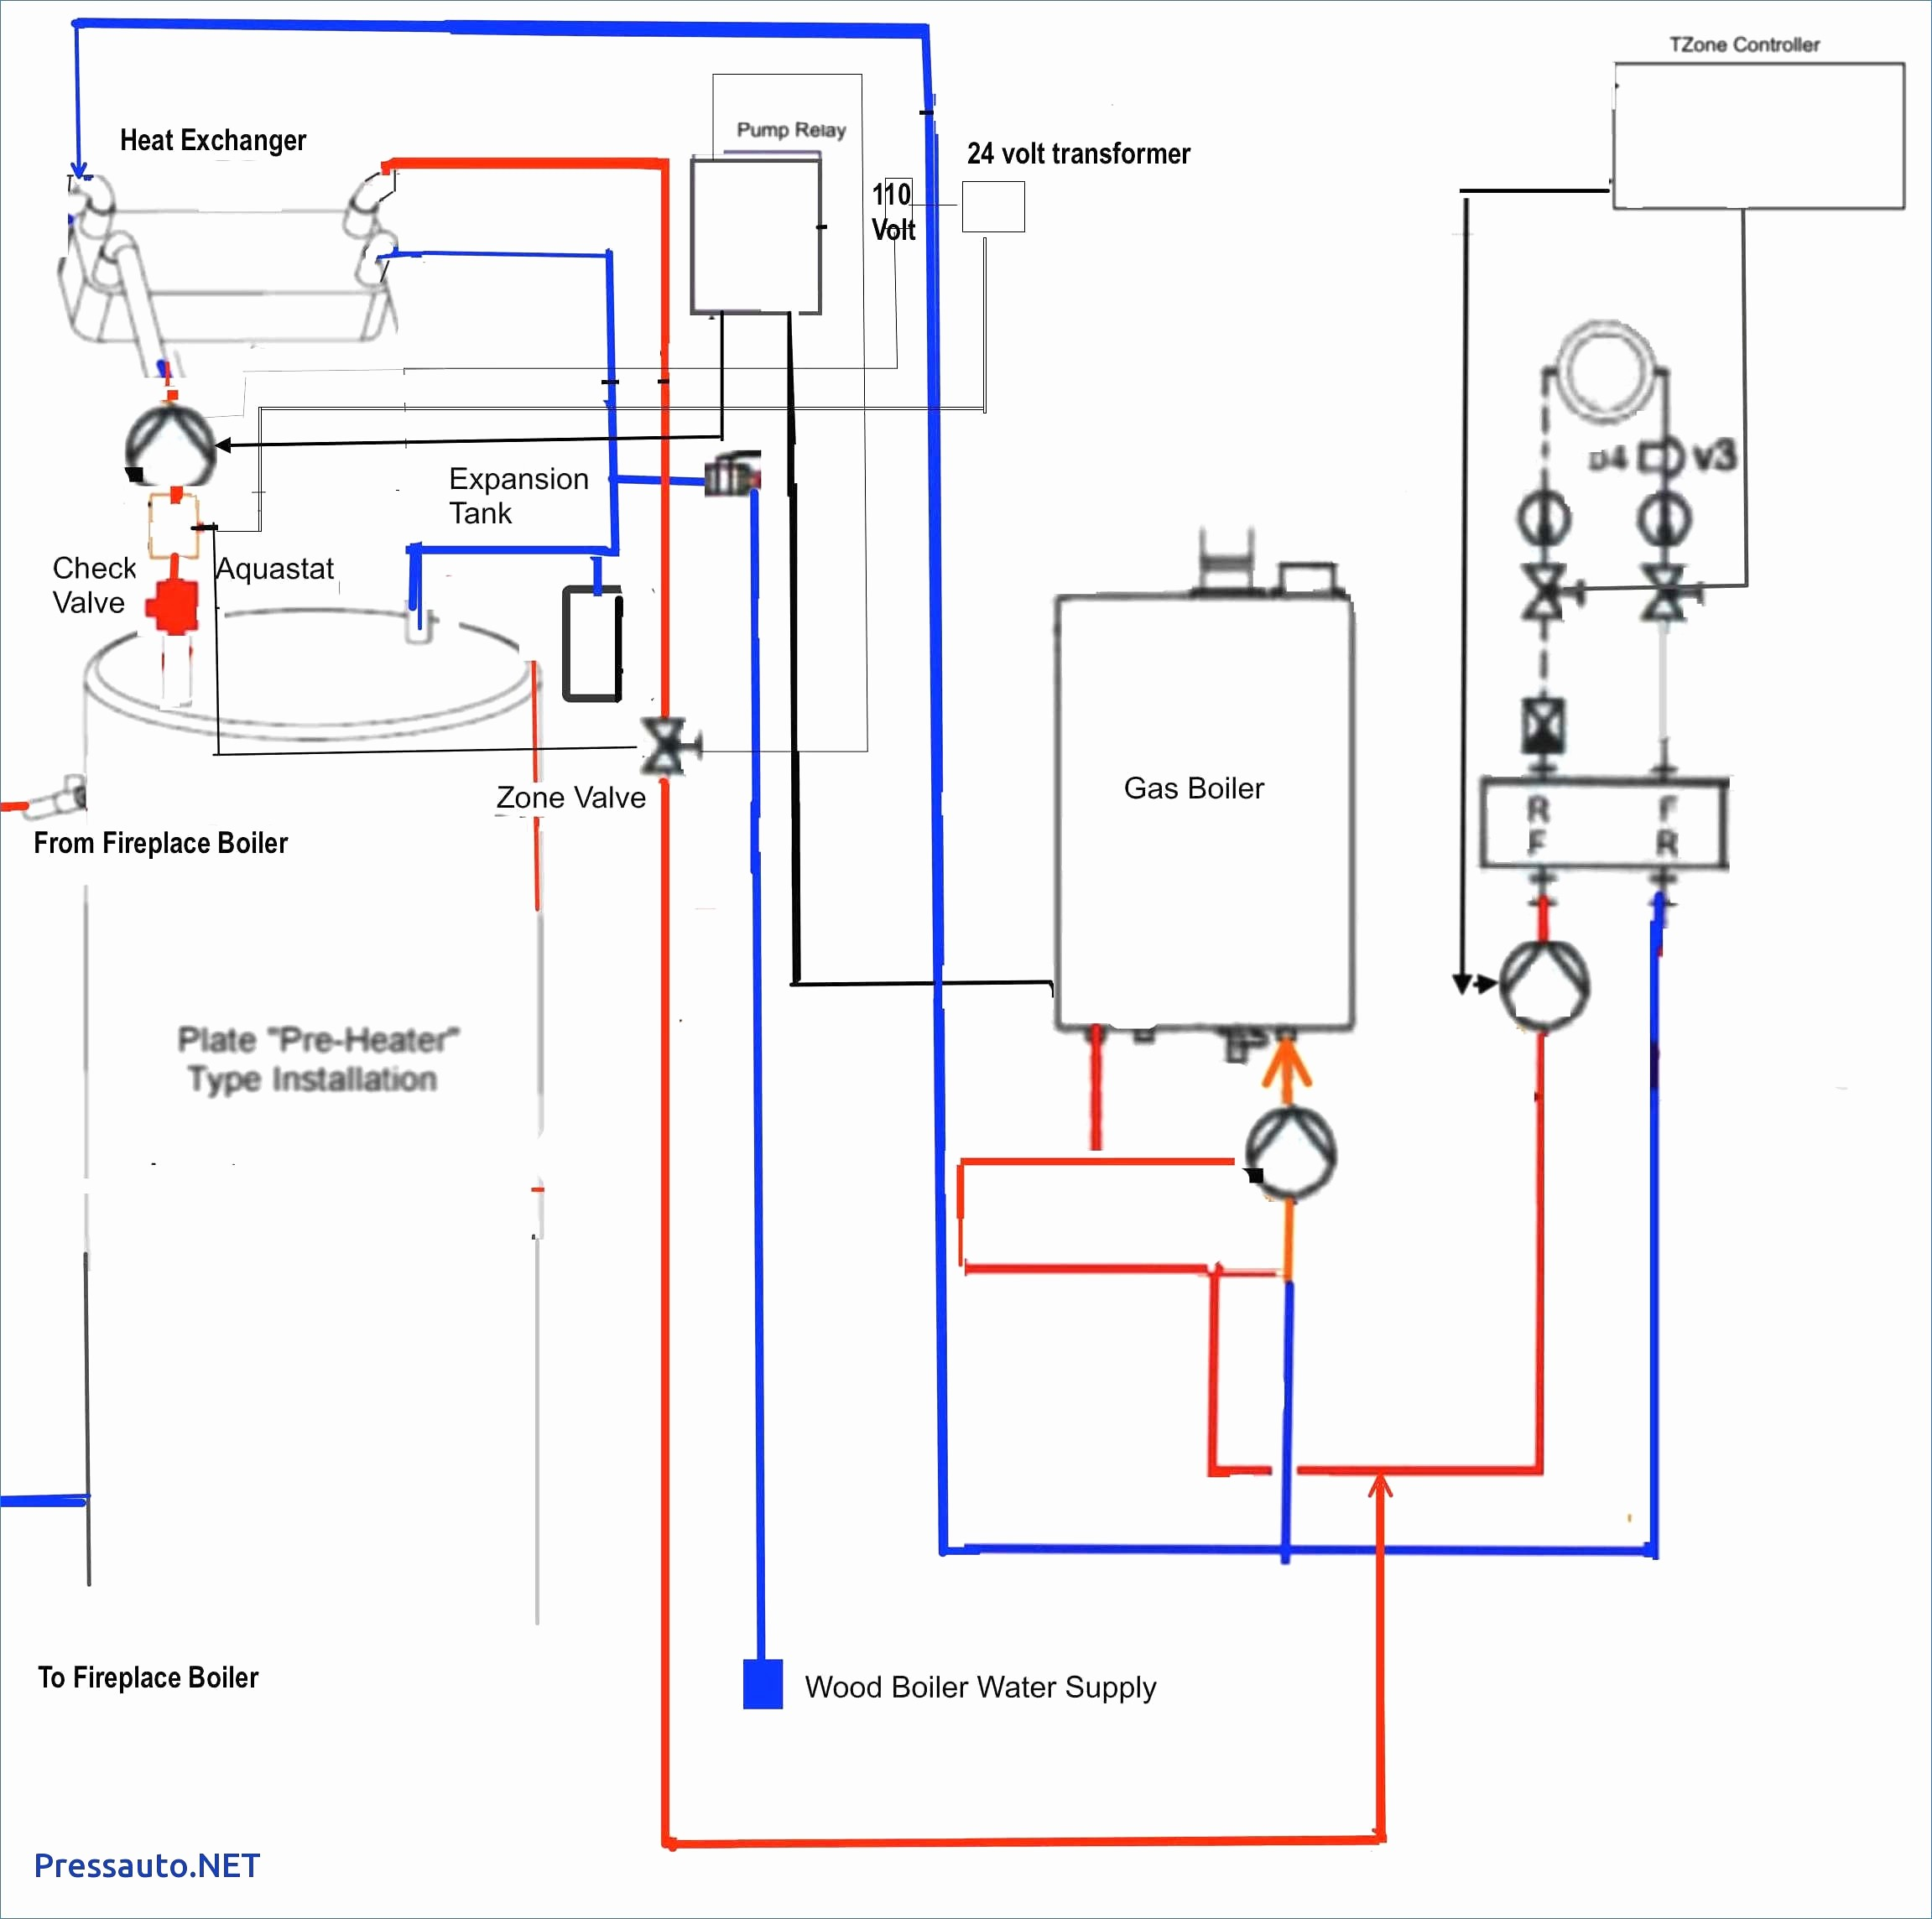 Honeywell Wiring Diagram Best Honeywell Aquastat Wiring Diagram  Tamahuproject org Lively Zone for